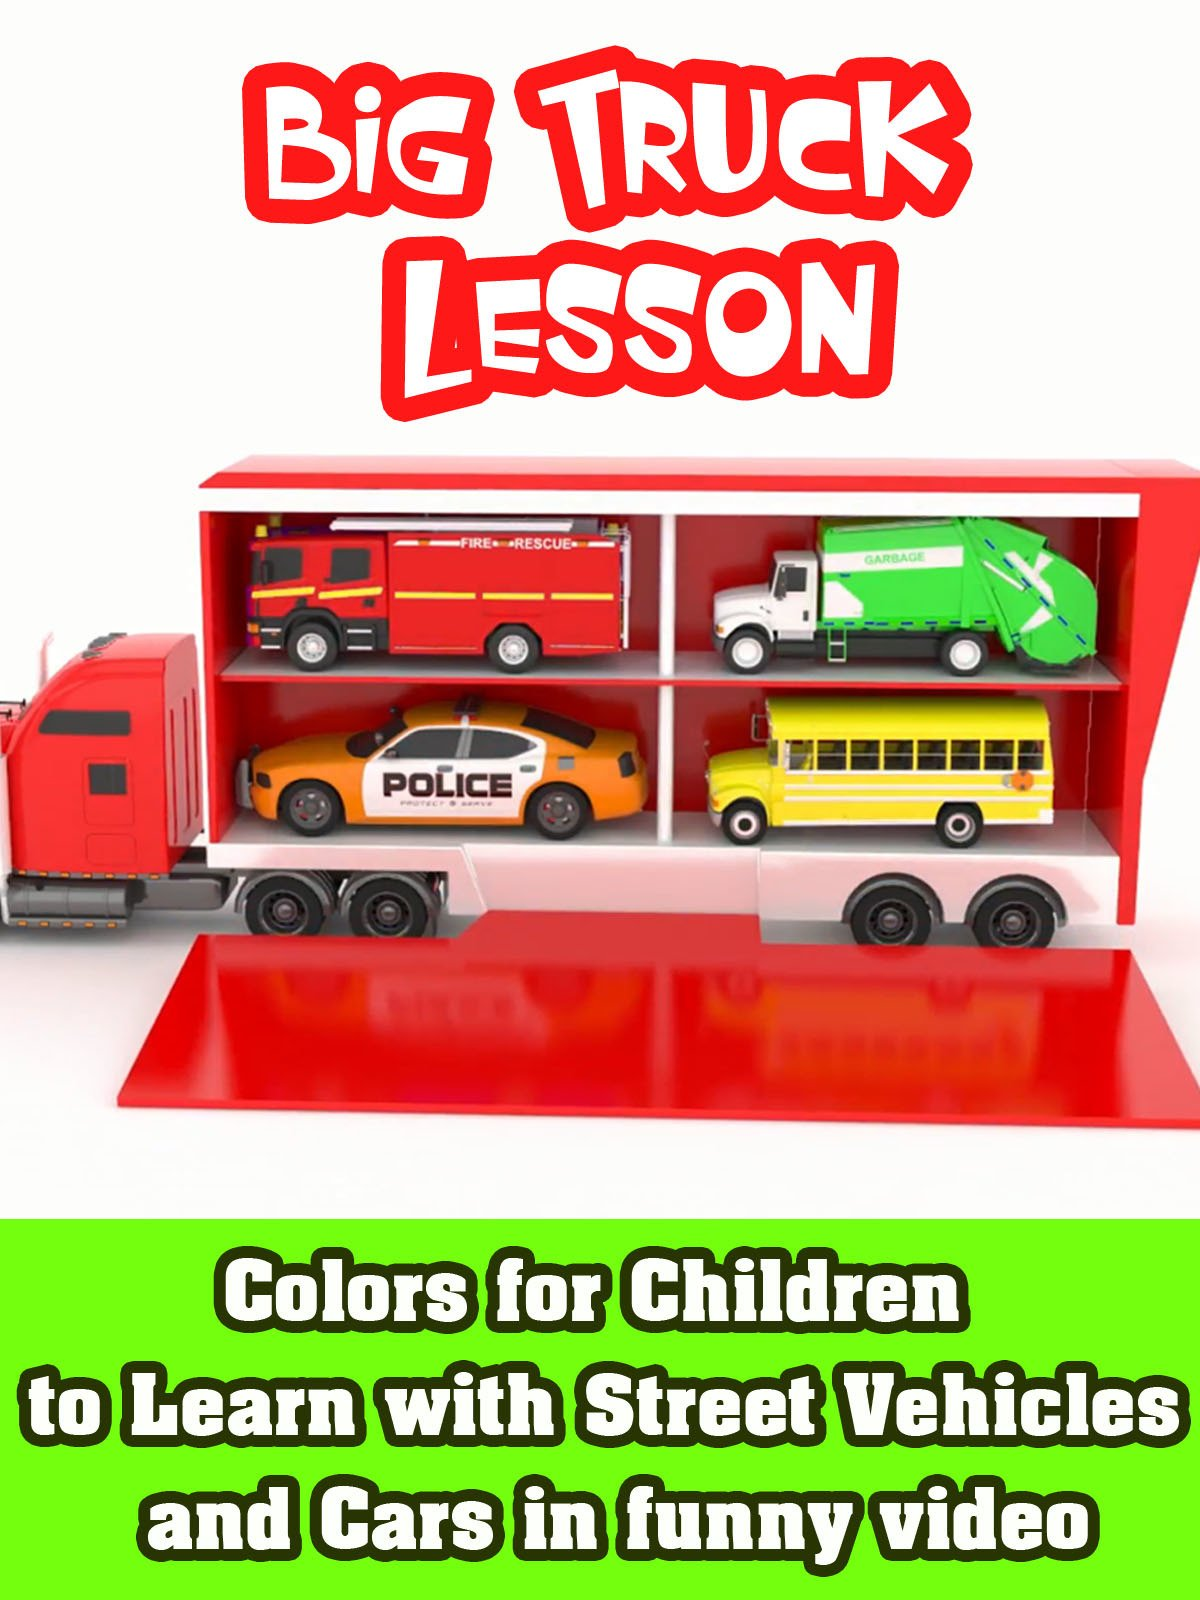 Colors for Children to Learn with Street Vehicles and Cars in funny video